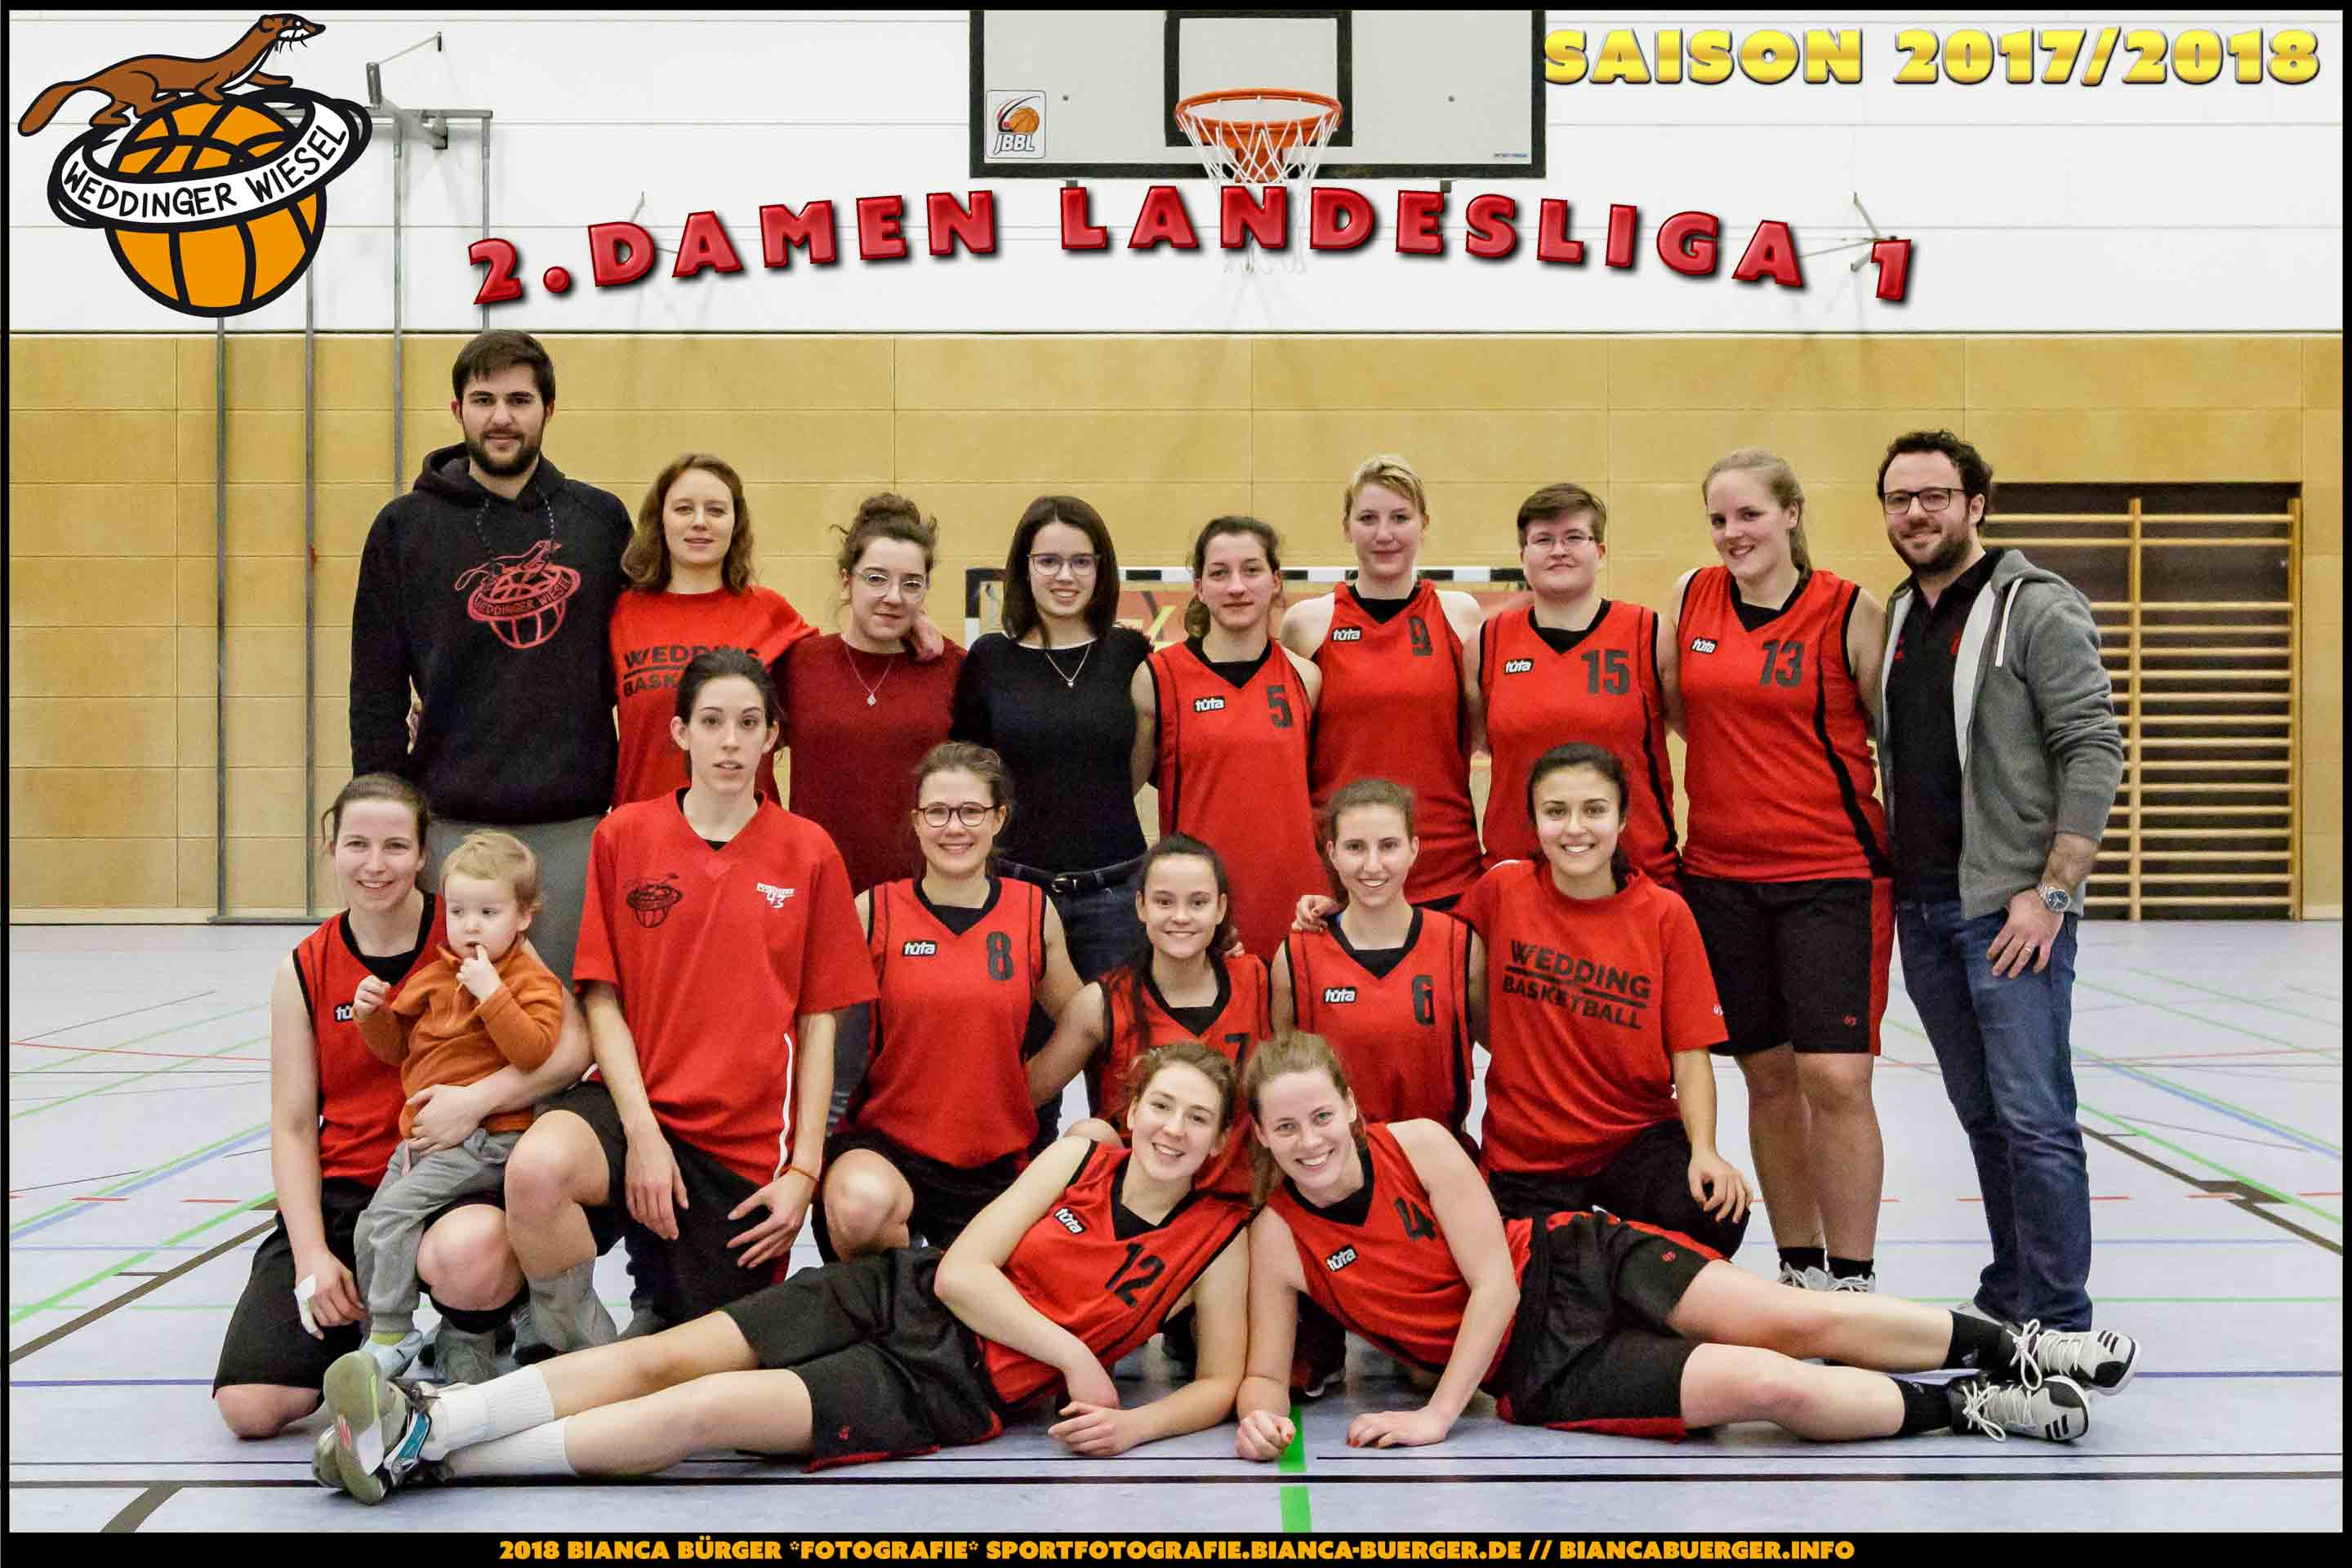 Team 2. Damen der Weddinger Wiesel - Saison 2017/2018